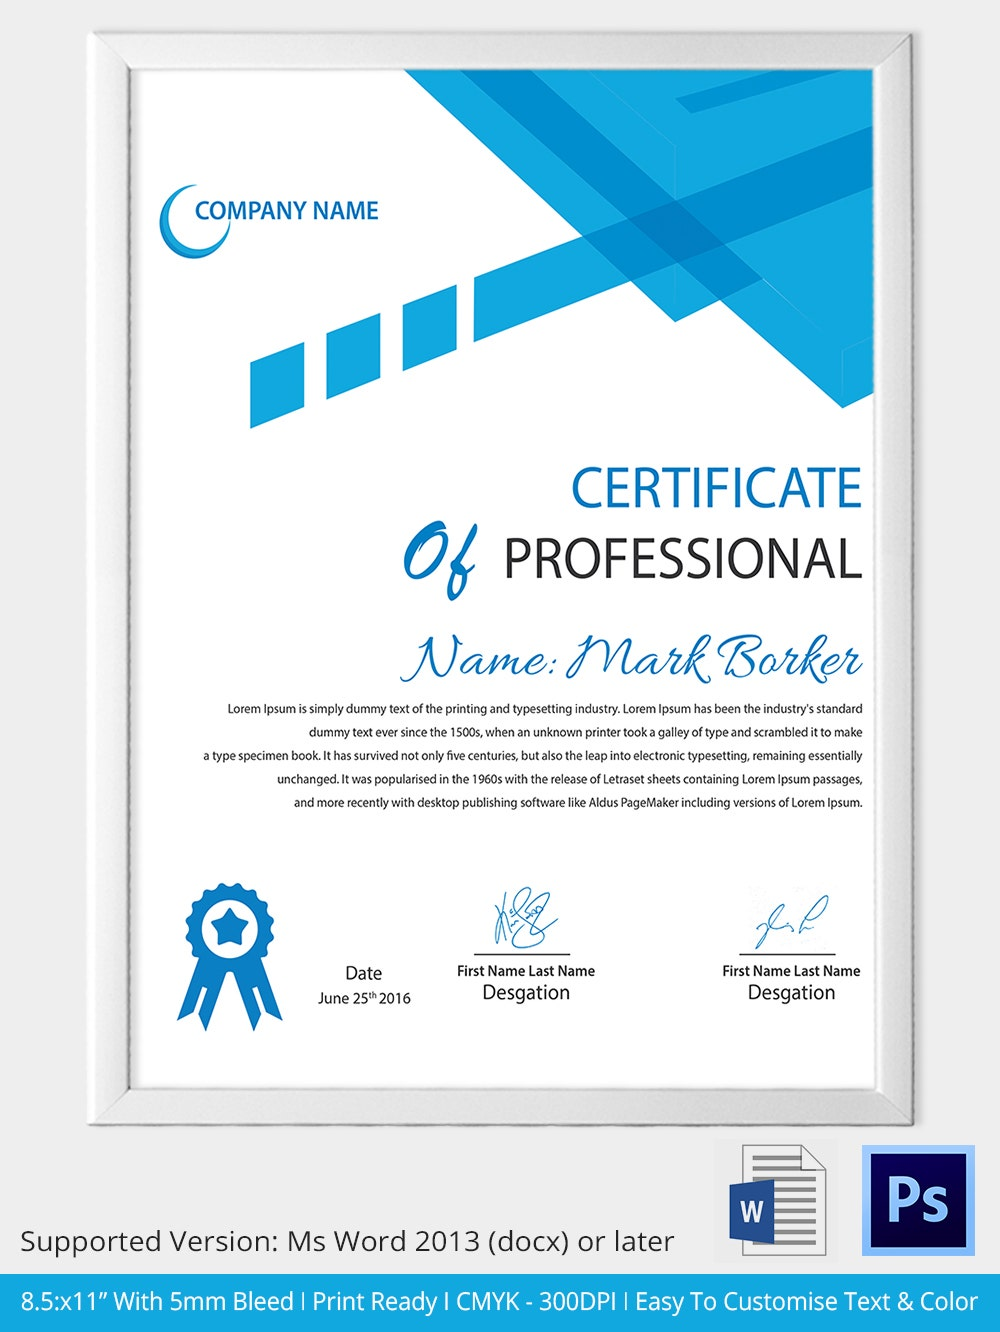 Certificate Templates in Microsoft Word Ready-Made